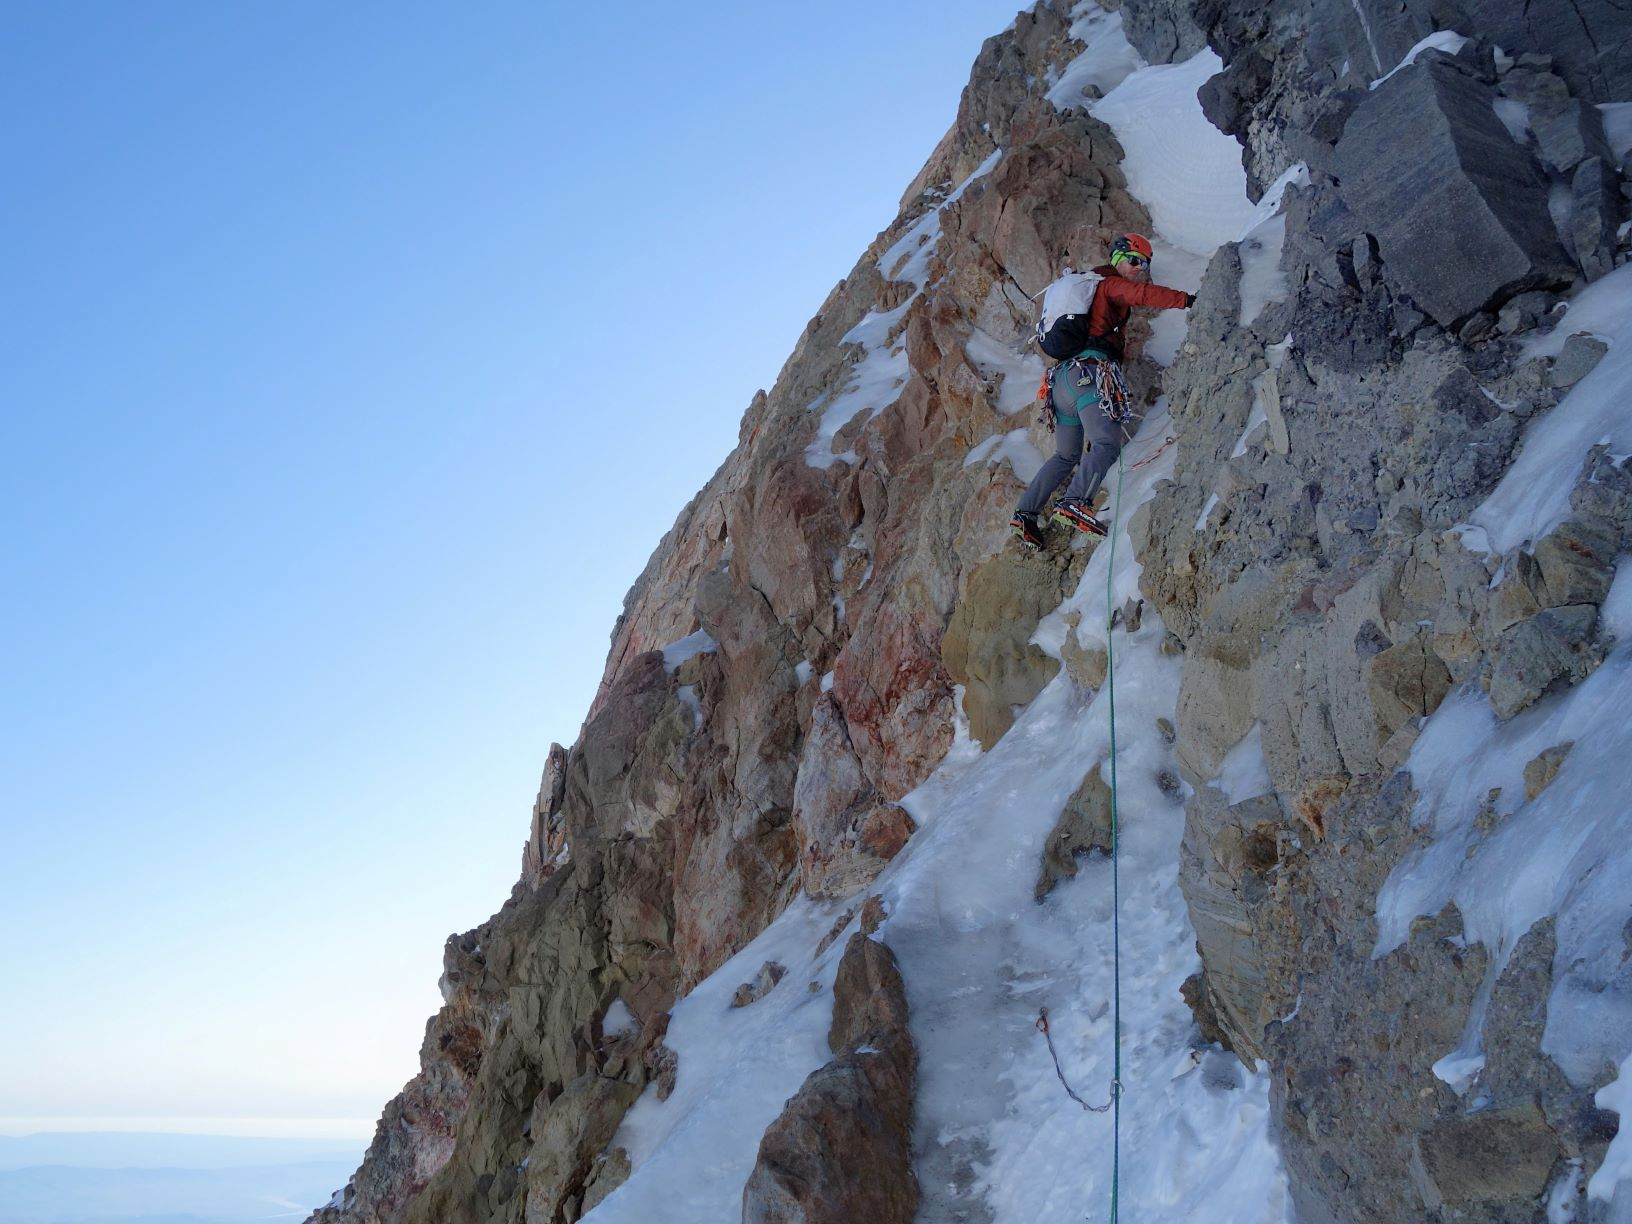 Rock climber Kyle Tarry ascending vertical mixed, rocky terrain on first pitch off Eliot Glacier -- climbing a ribbon of ice.